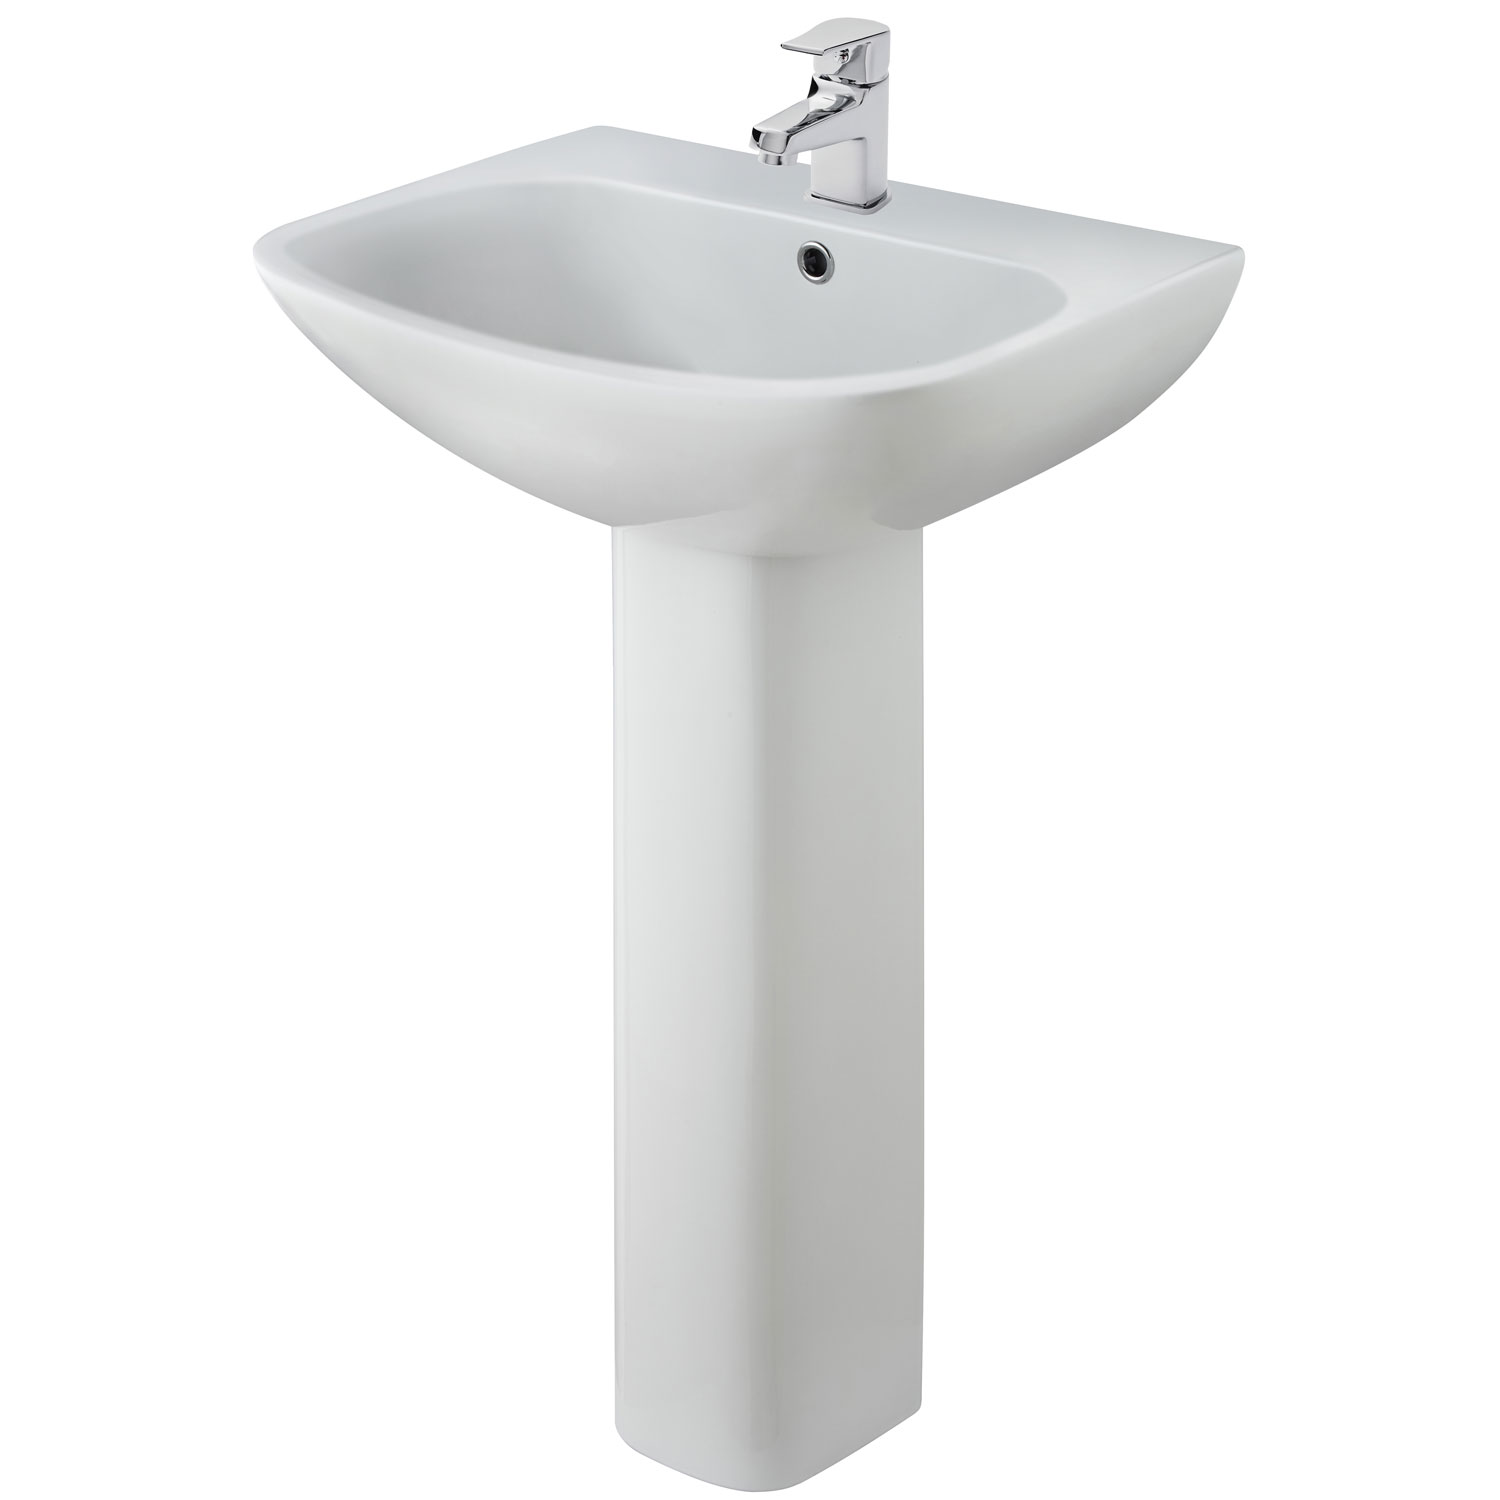 Premier Ava Basin and Full Pedestal 545mm Wide - 1 Tap Hole